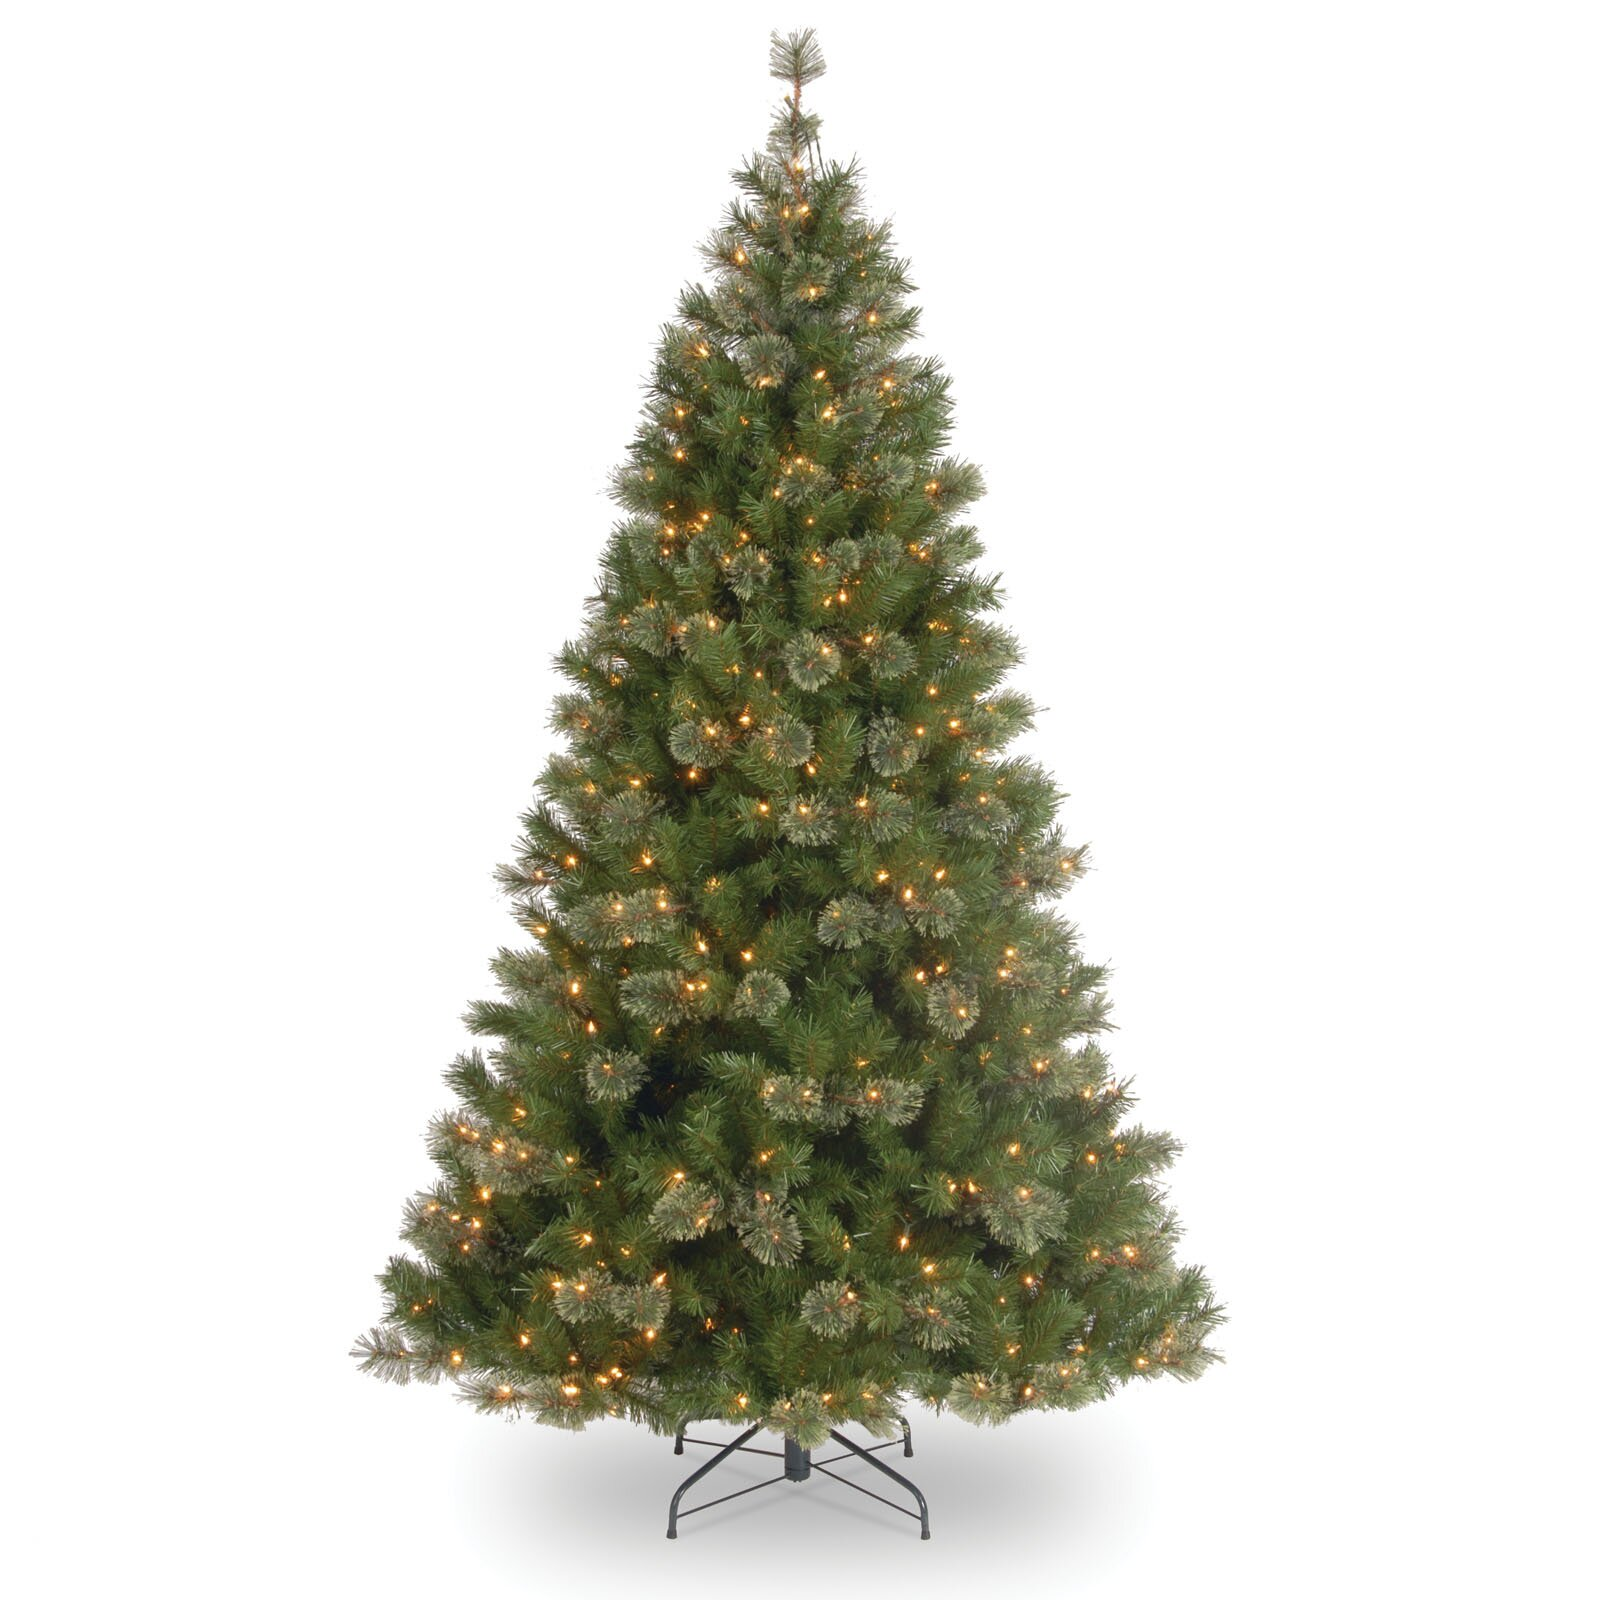 national tree co atlanta spruce 7 5 39 green artificial christmas tree with 550 pre lit clear. Black Bedroom Furniture Sets. Home Design Ideas